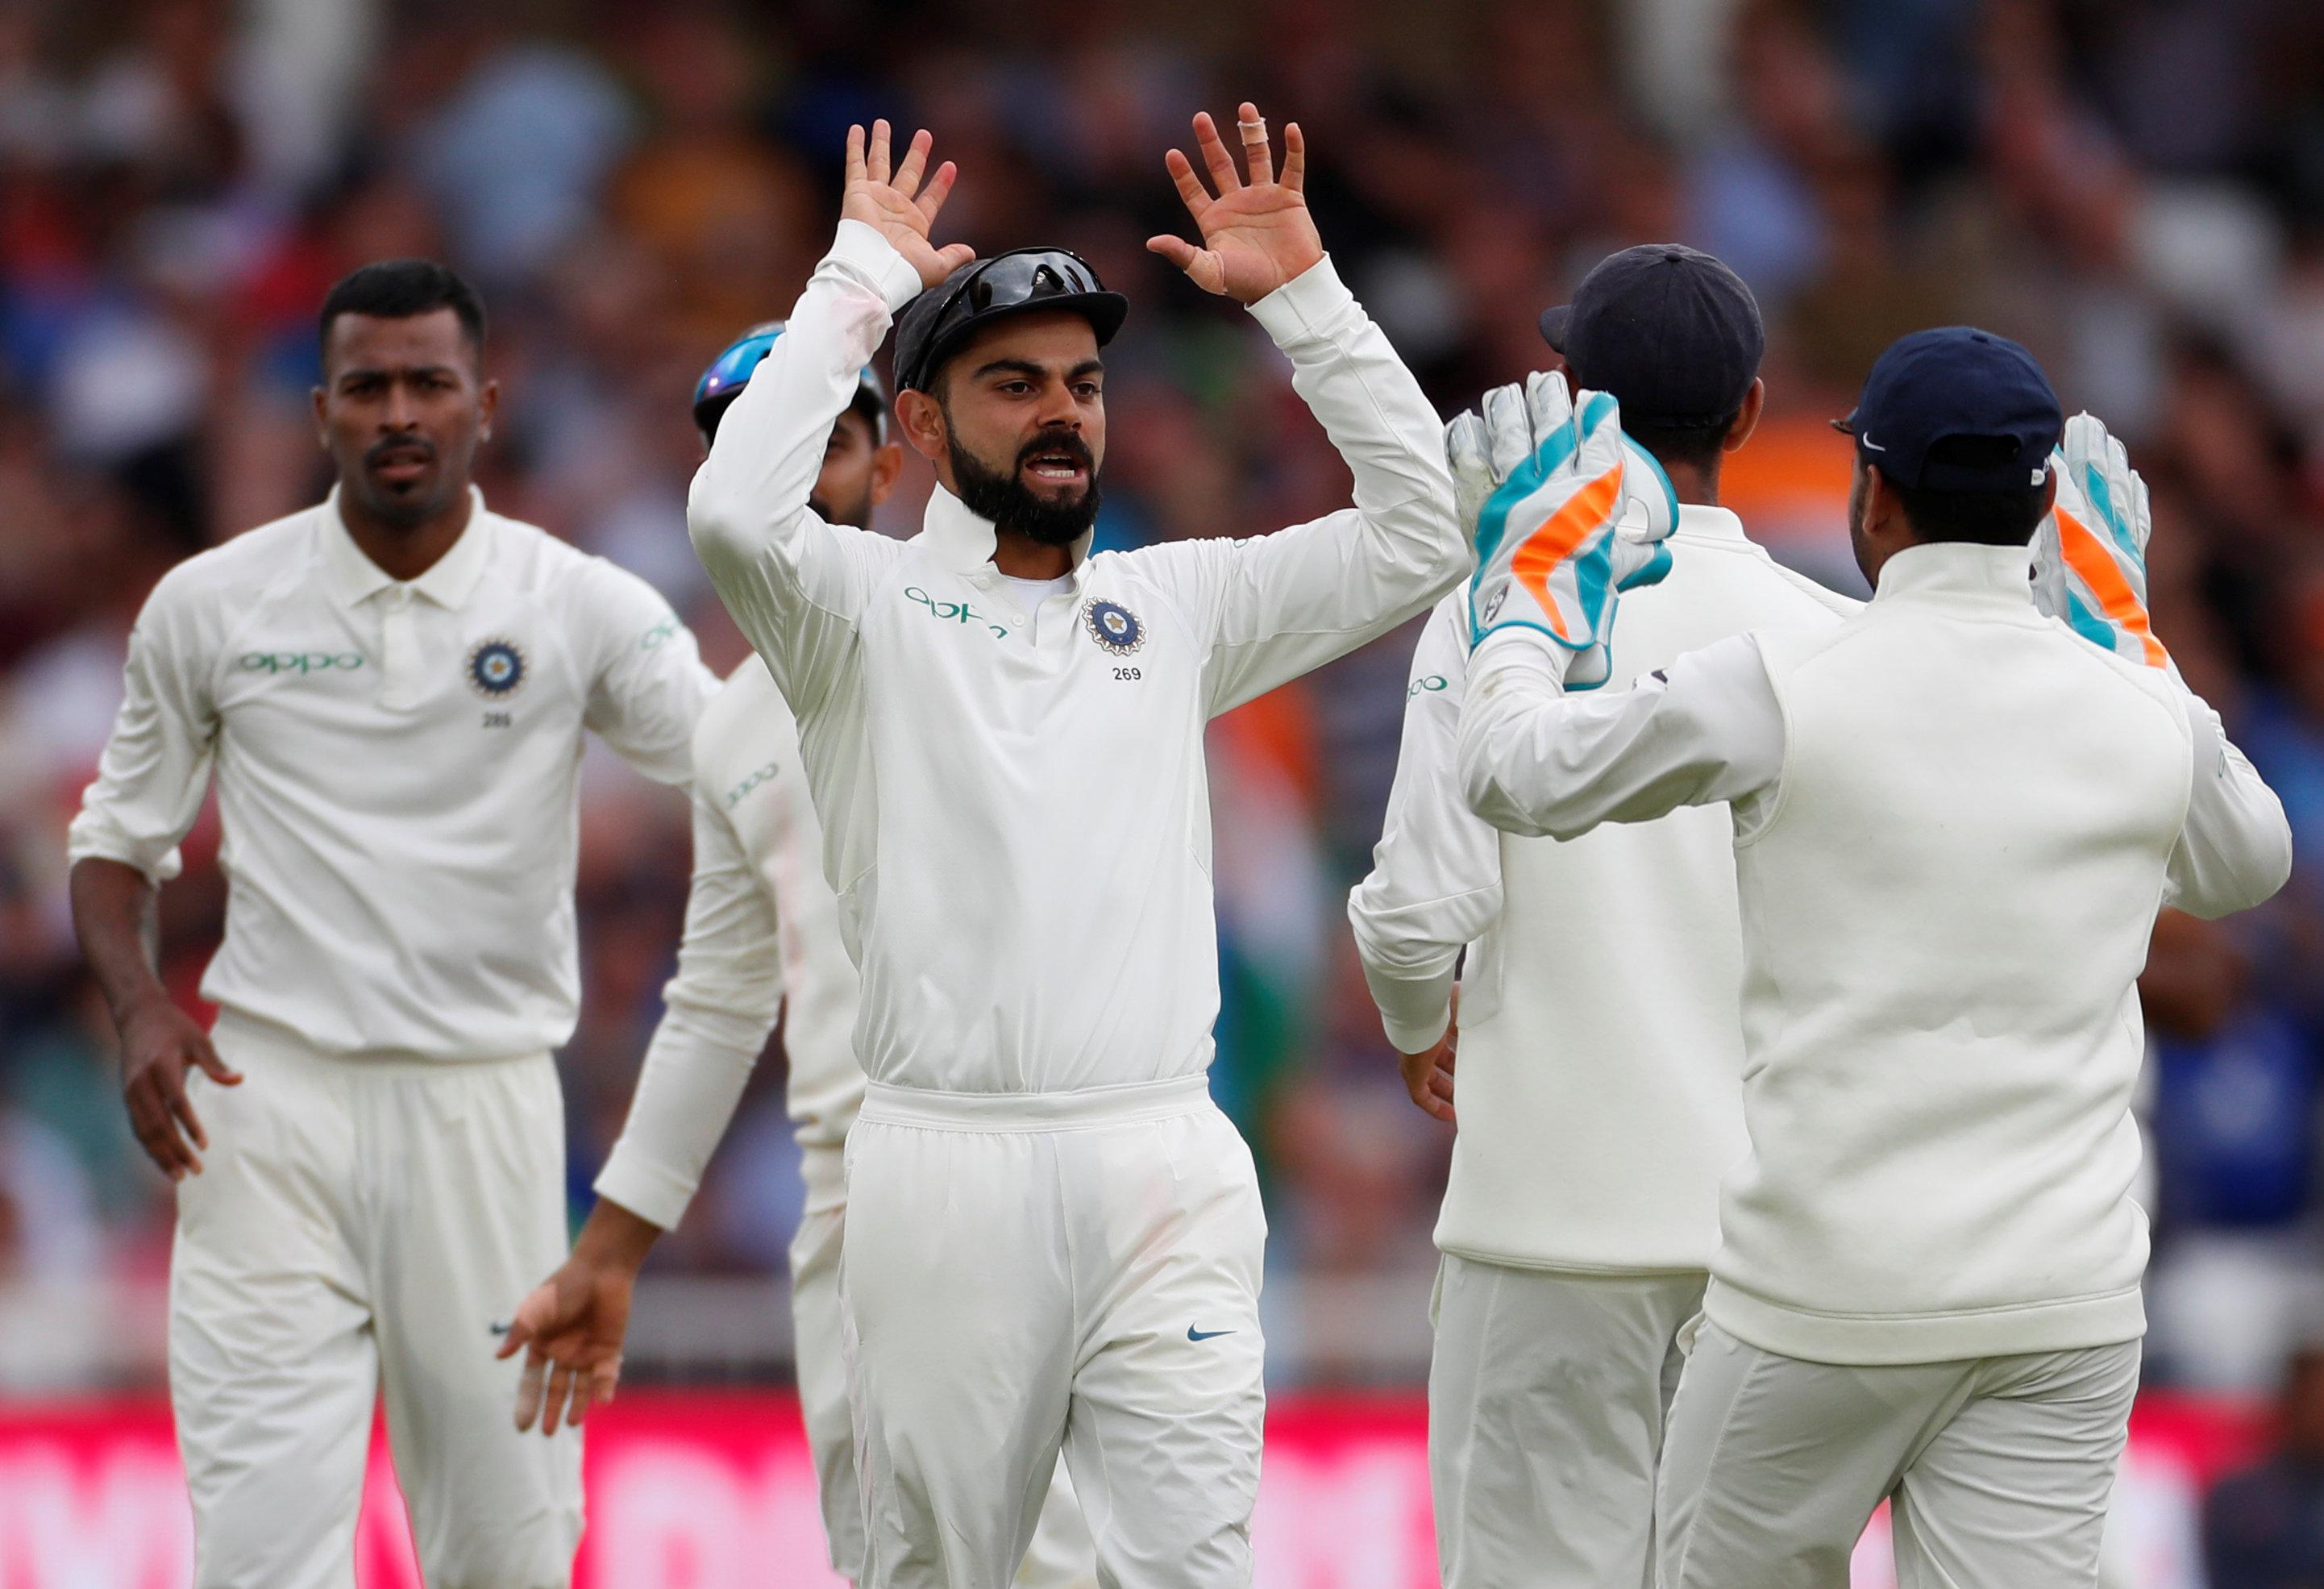 A total of 16 wickets fell on the second day as India took control of the third Test